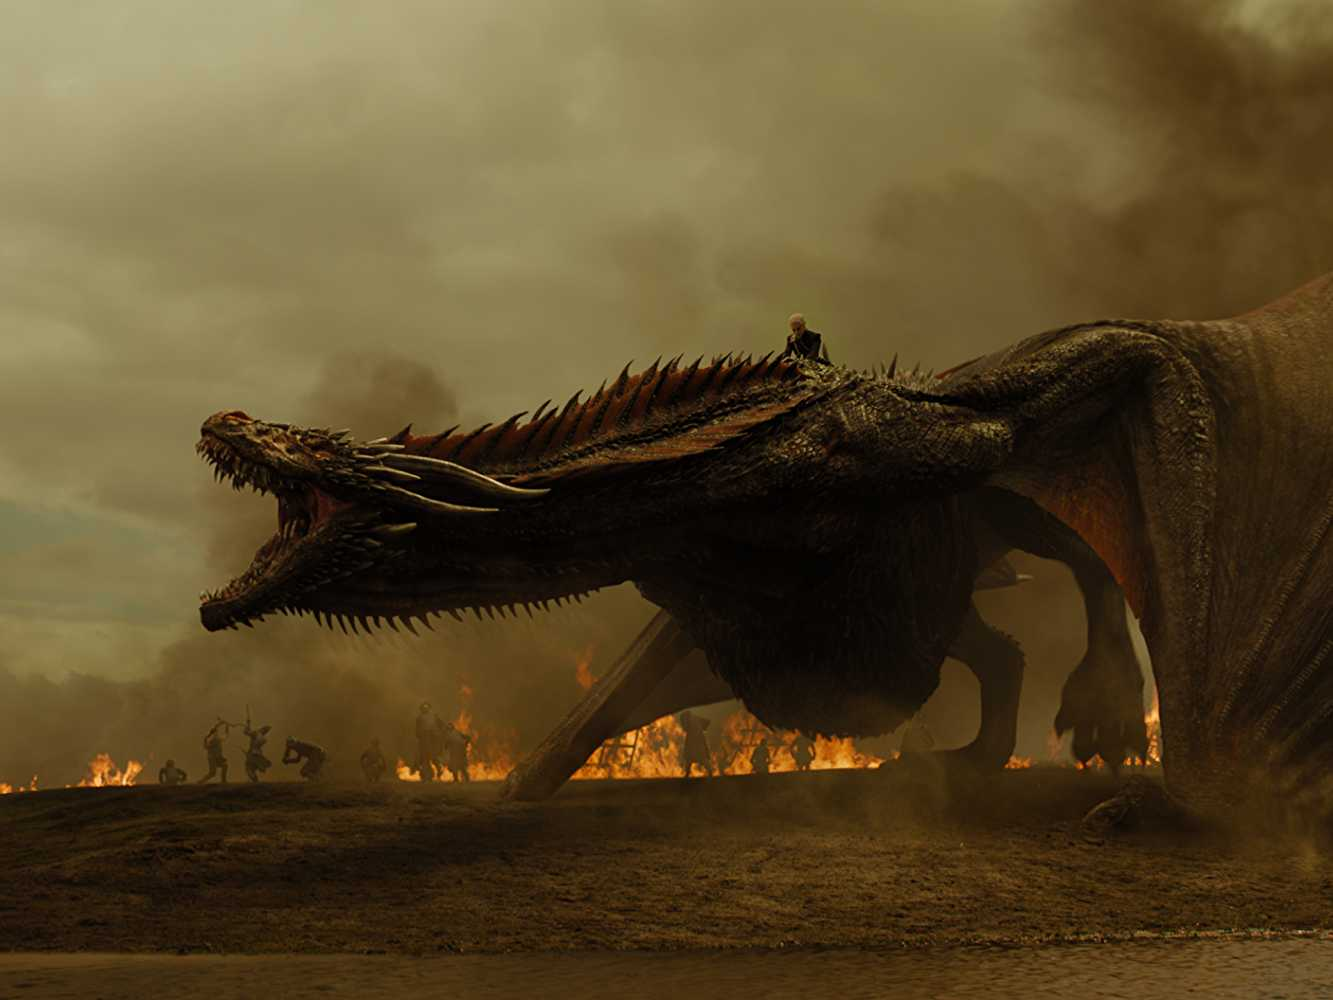 Dragons may face more limitations in the upcoming battle in 'Game of Thrones' (Source: IMDB)